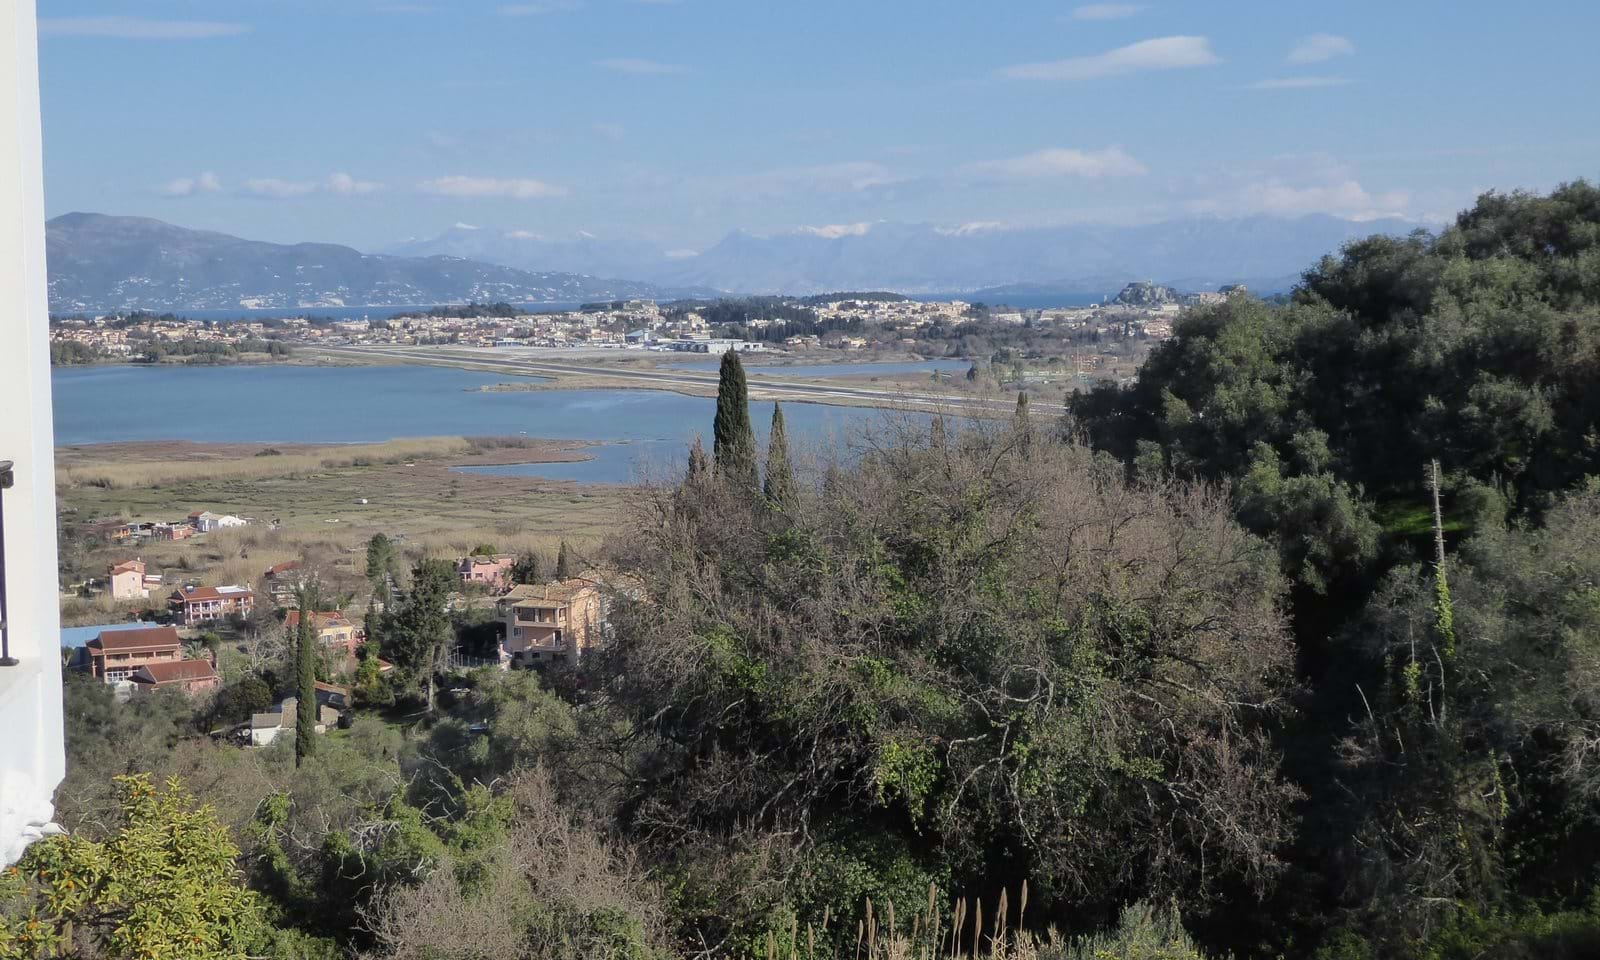 Corfu property and real estate